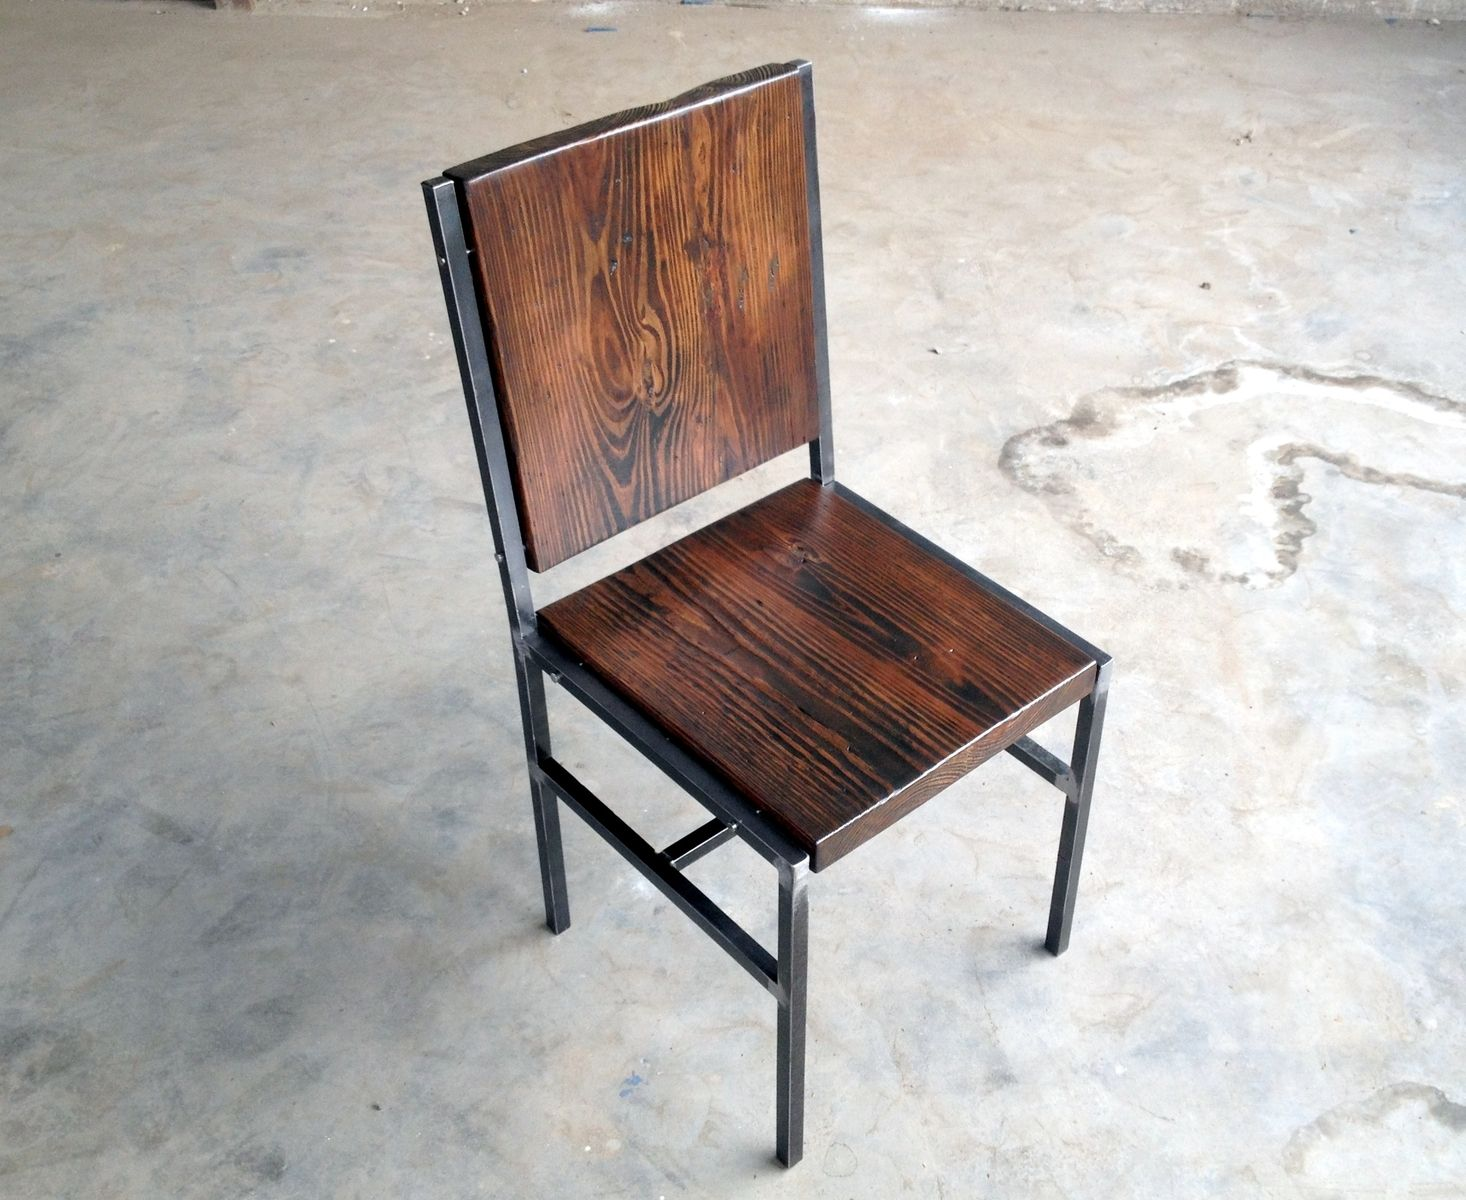 Hand Crafted Chair Stool Made Of Reclaimed Wood And Steel With Iron Pins By Shellback Iron